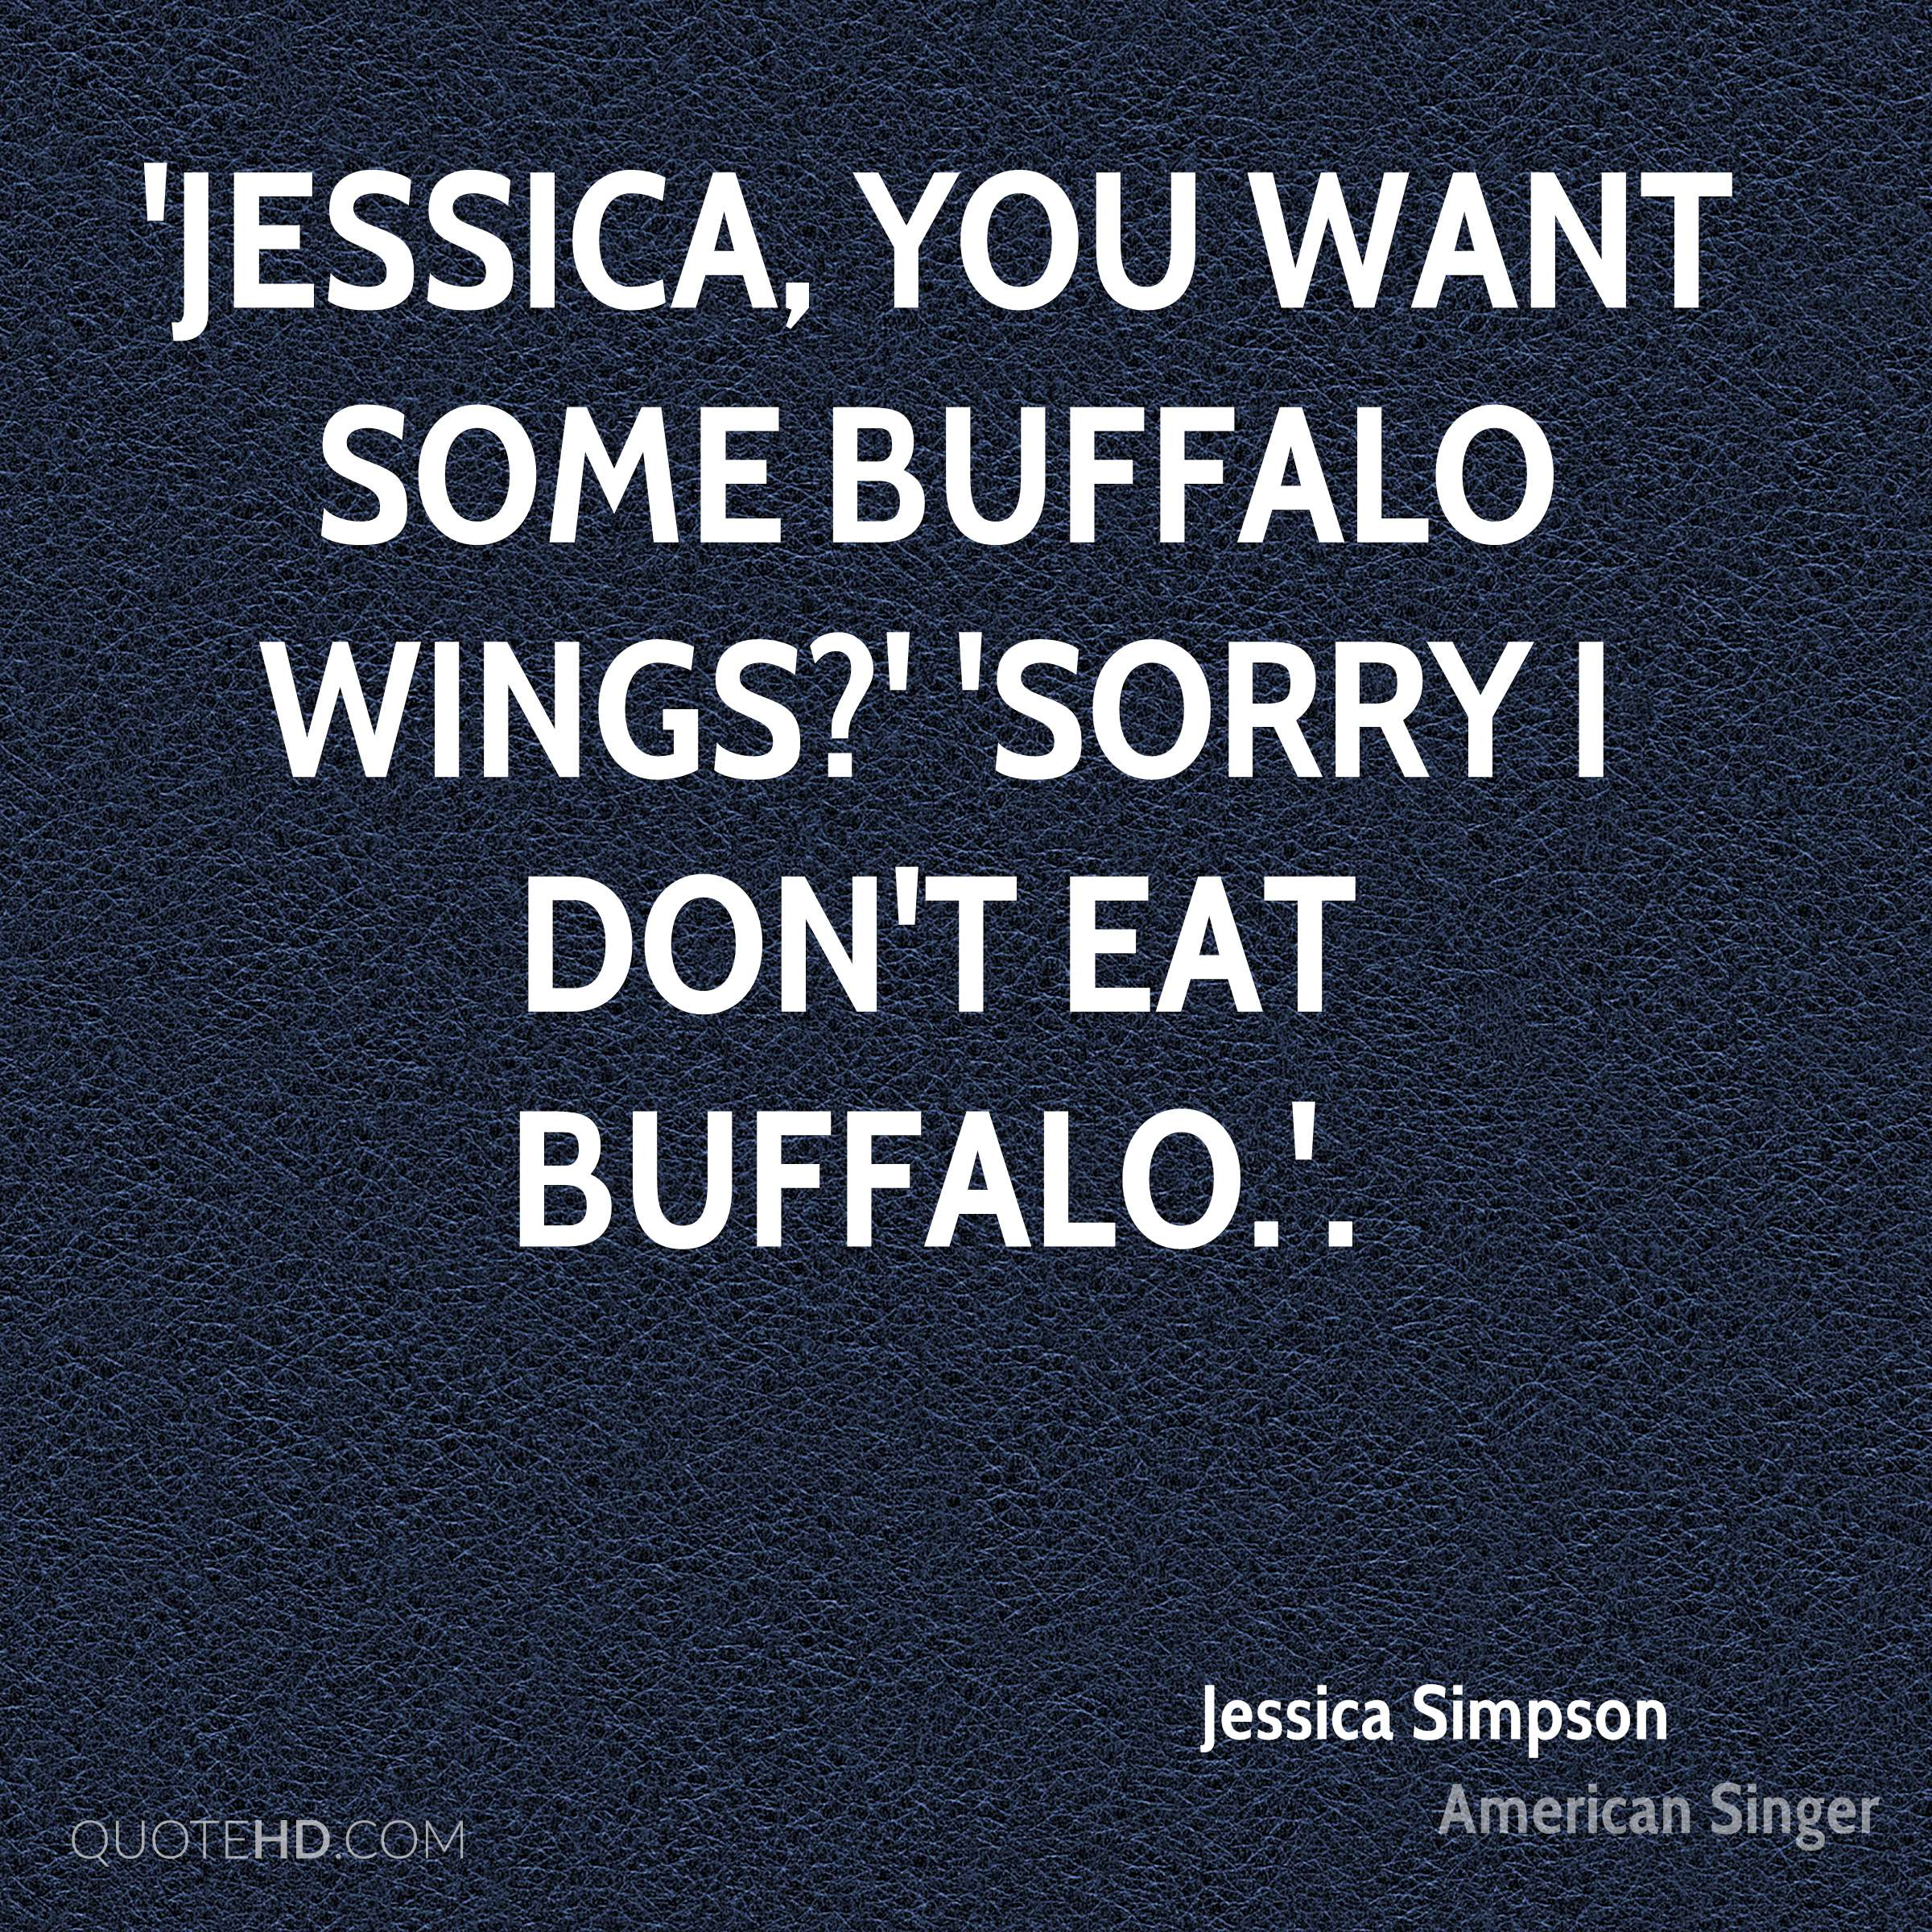 jessica-simpson-quote-jessica-you-want-some-buffalo-wings-sorry-i.jpg